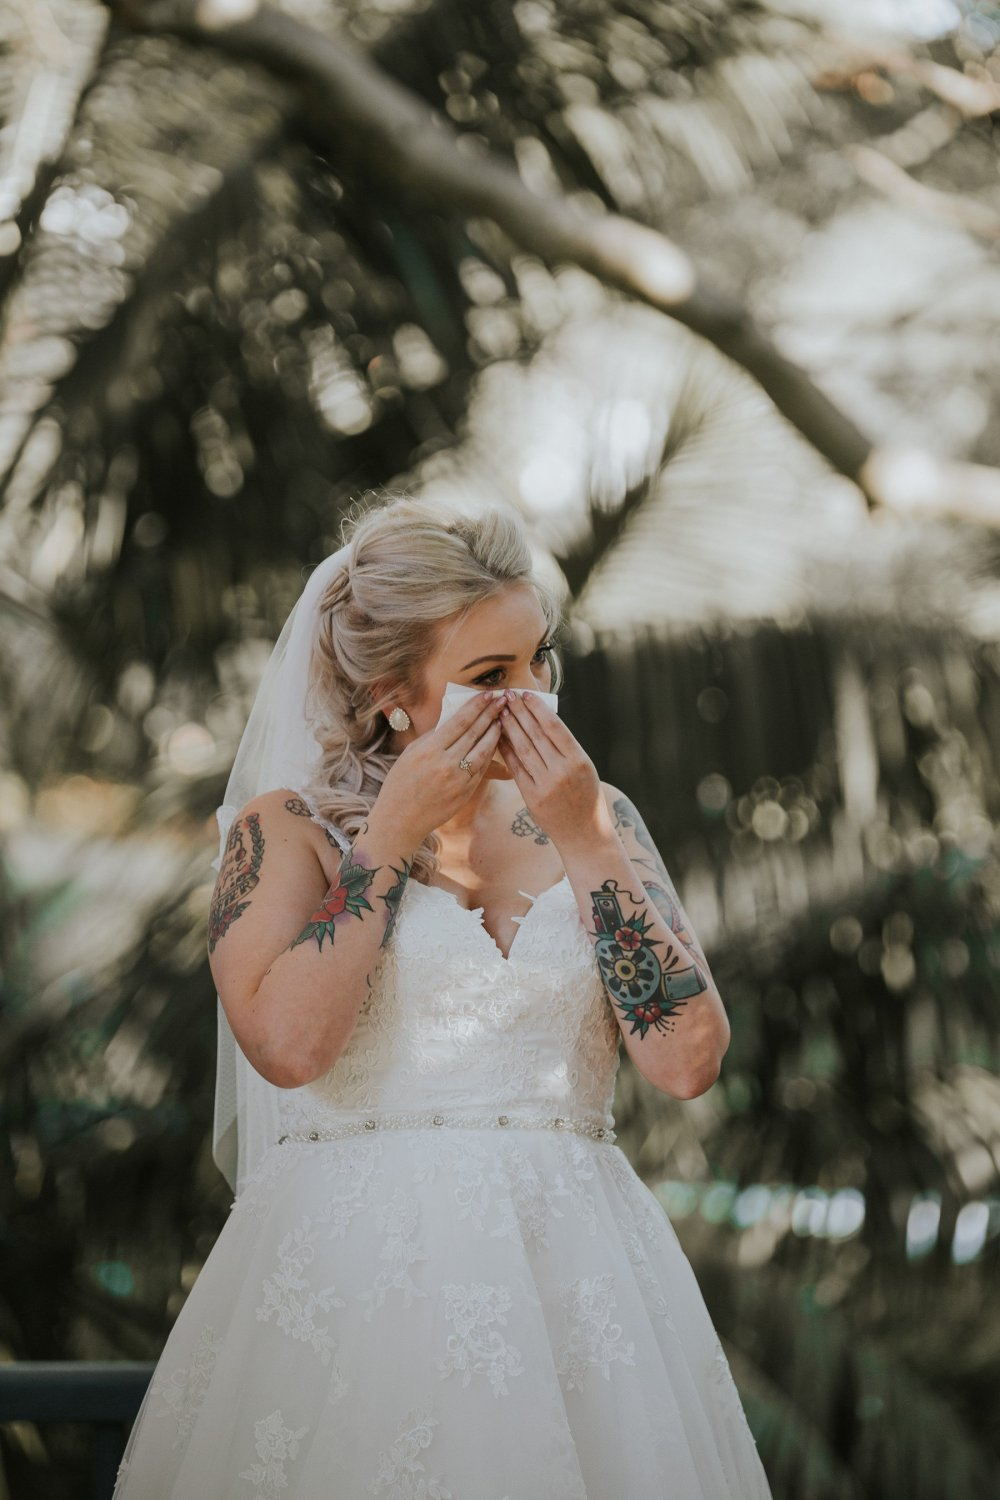 Ebony Blush Photography | Perth Wedding Photographer | Kate + Gareth | Yallingup Wedding Photos22